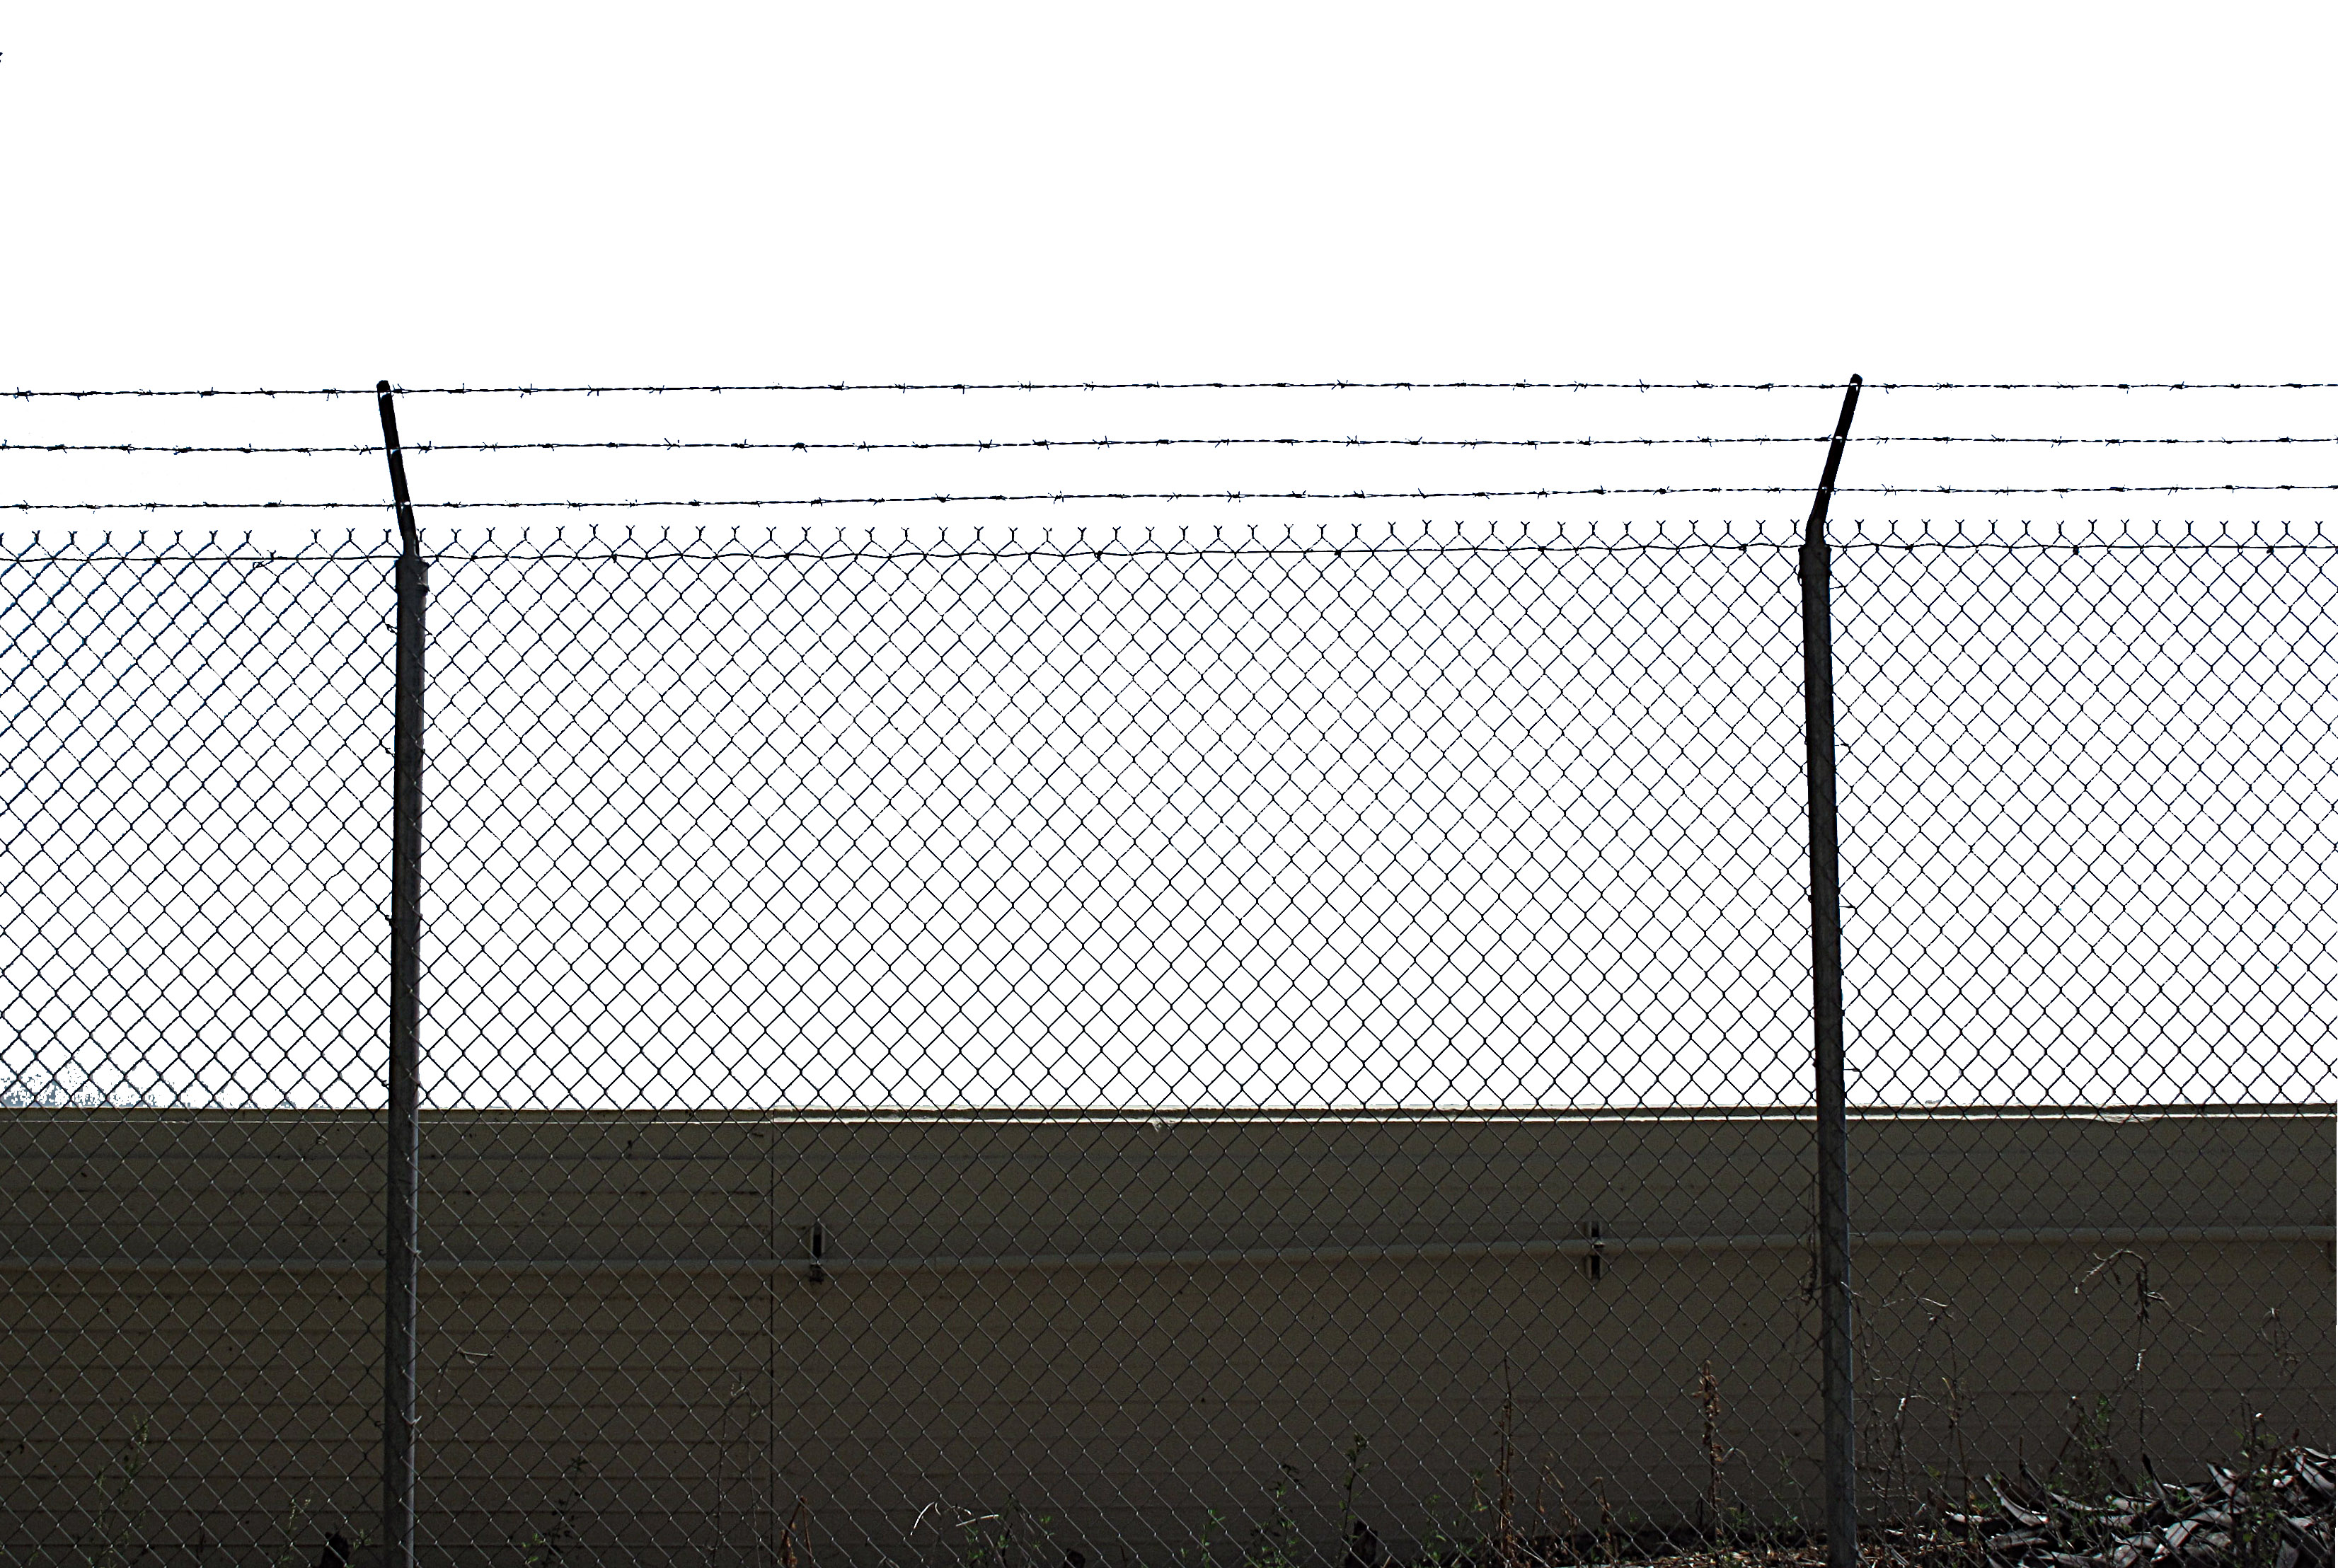 chain link fence background. Simple Fence FileChainlink Fence No Backgroundjpg For Chain Link Fence Background